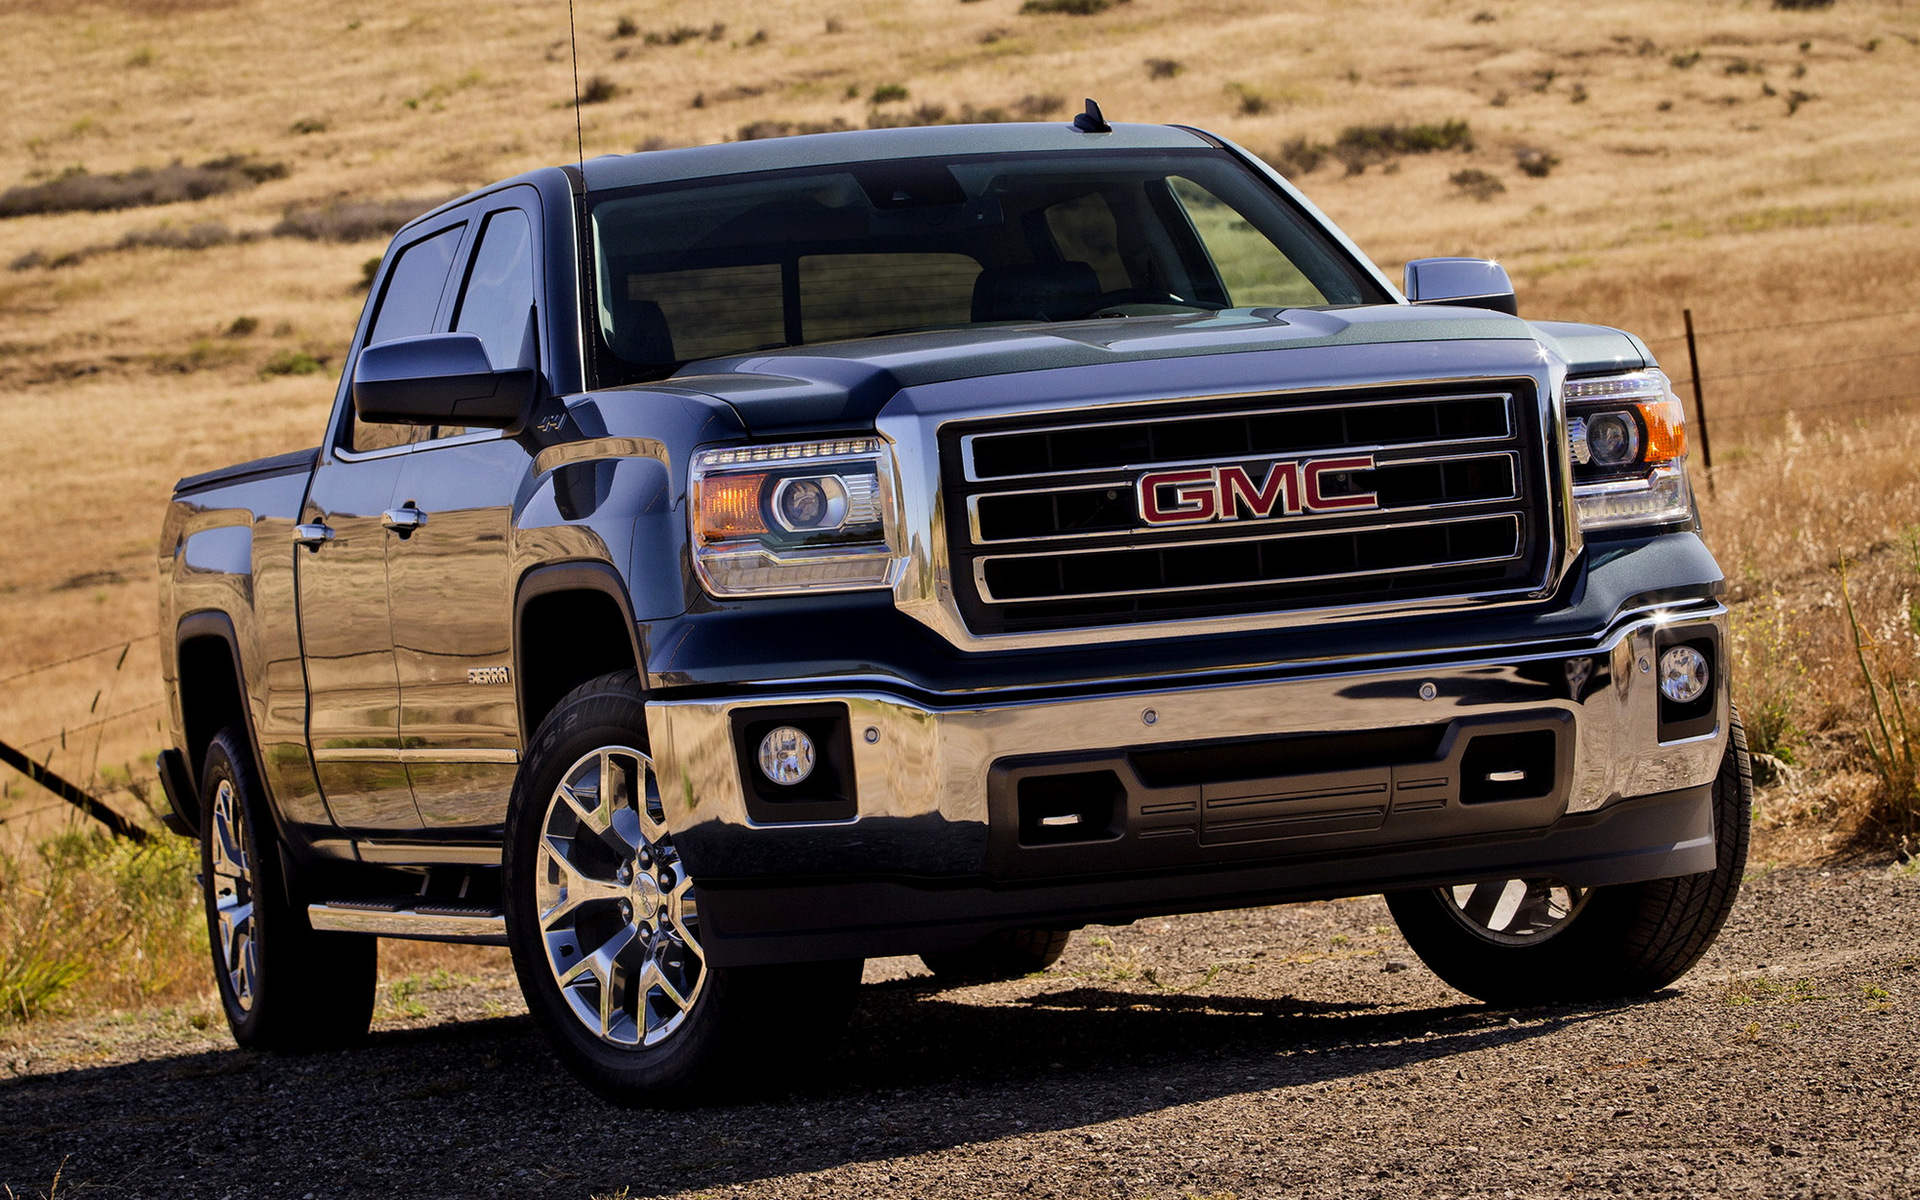 2015 Ram 2500 >> 2014 GMC Sierra 1500 SLT Crew Cab - Wallpapers and HD ...